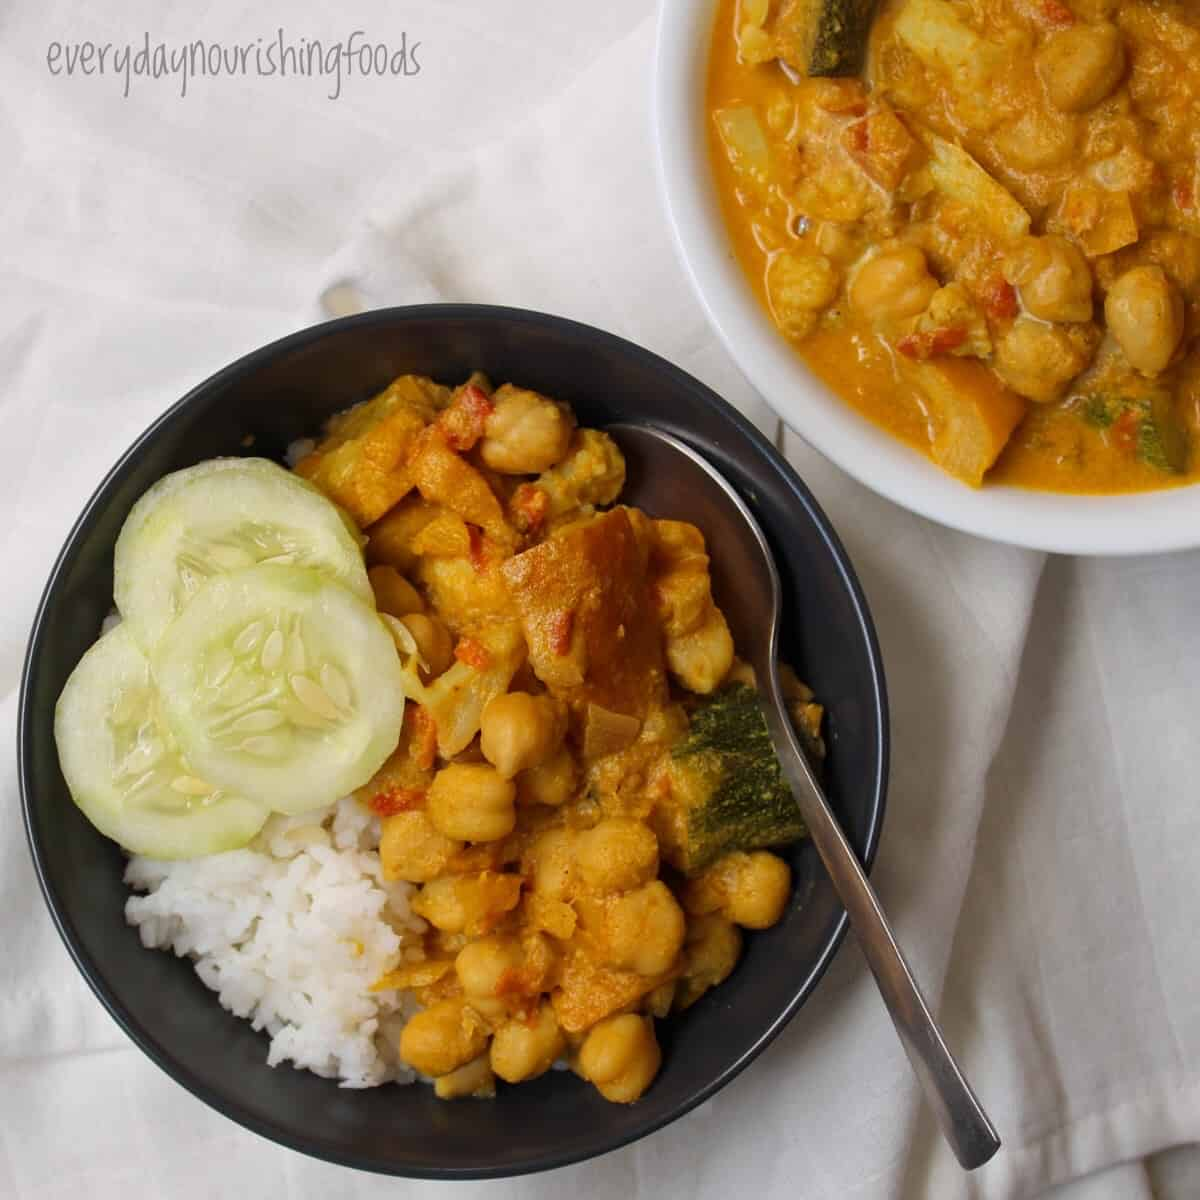 instant pot vegetable curry in a bowl along with rice